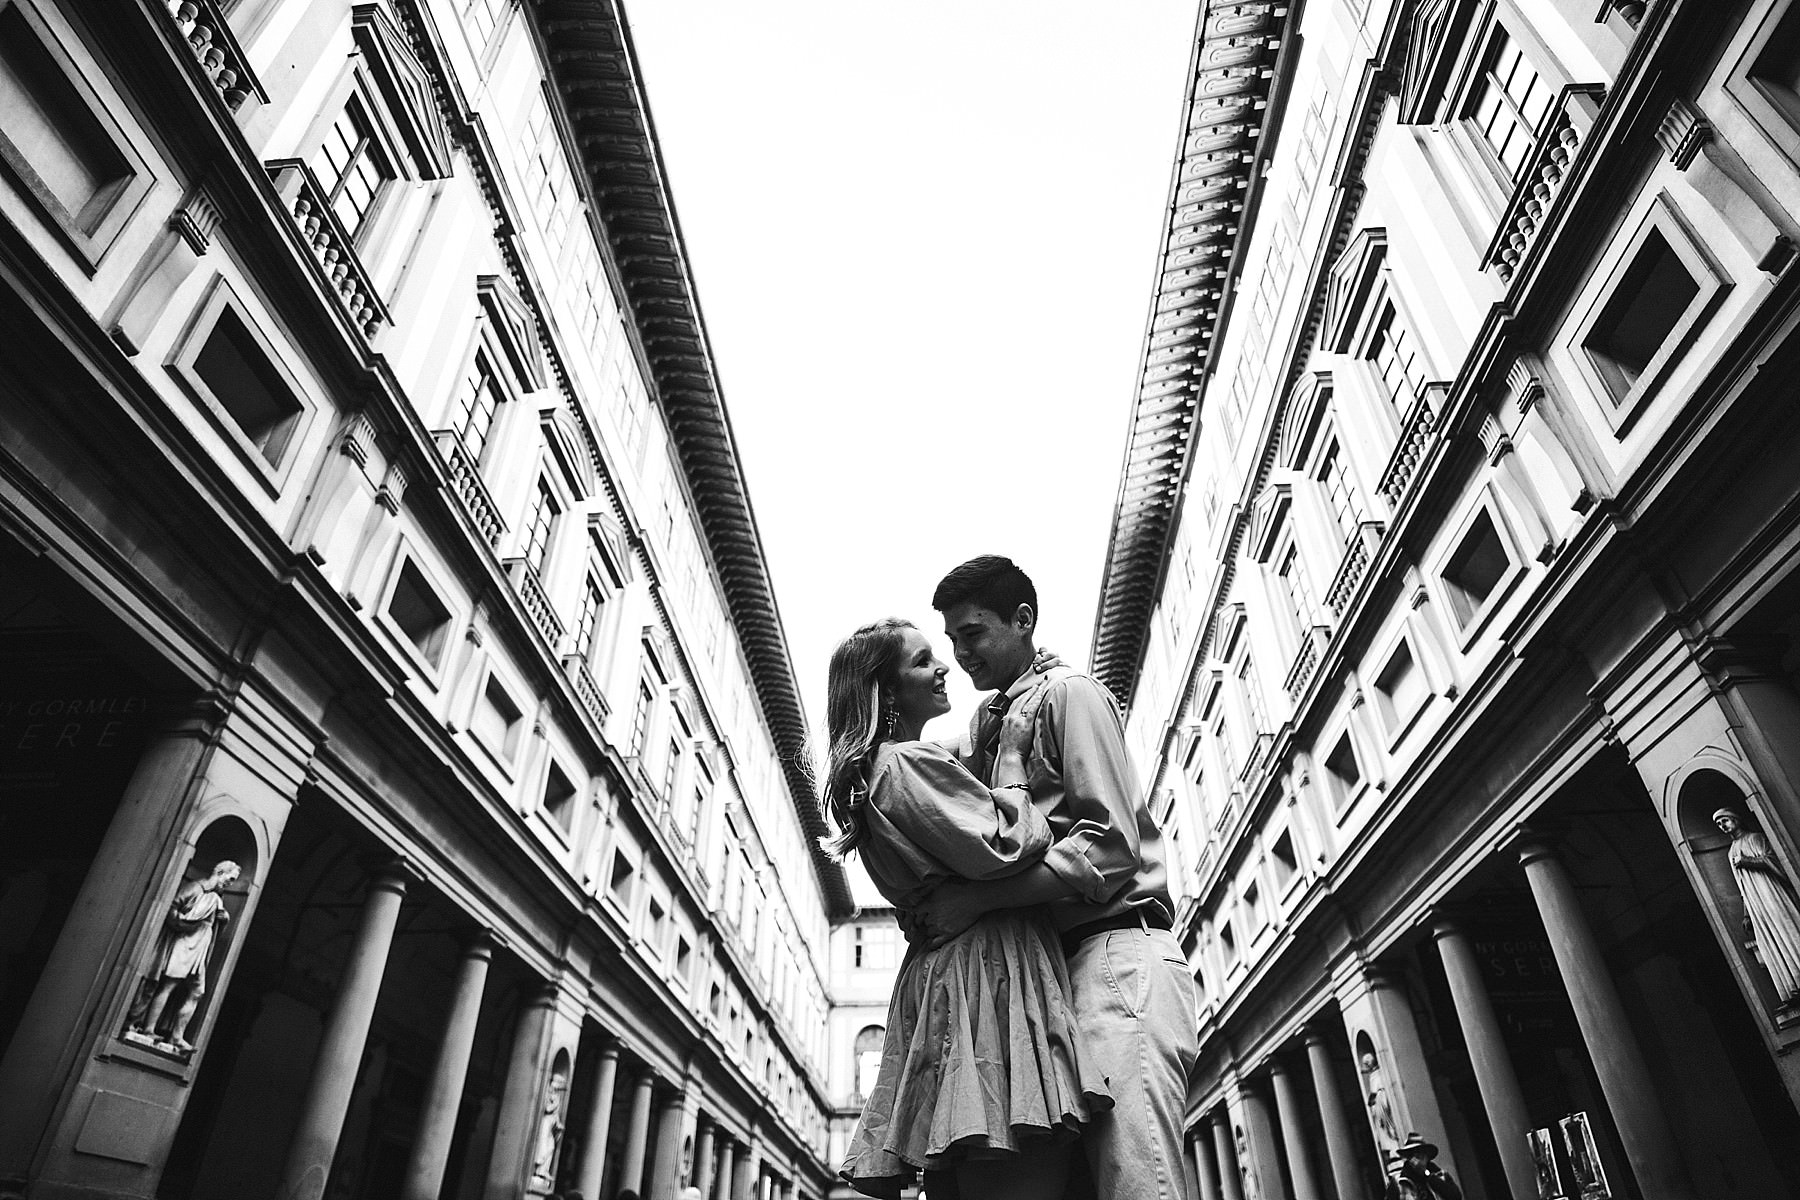 Lovely and elegant couple photo shoot at the Uffizi Museum Gallery during sunrise time